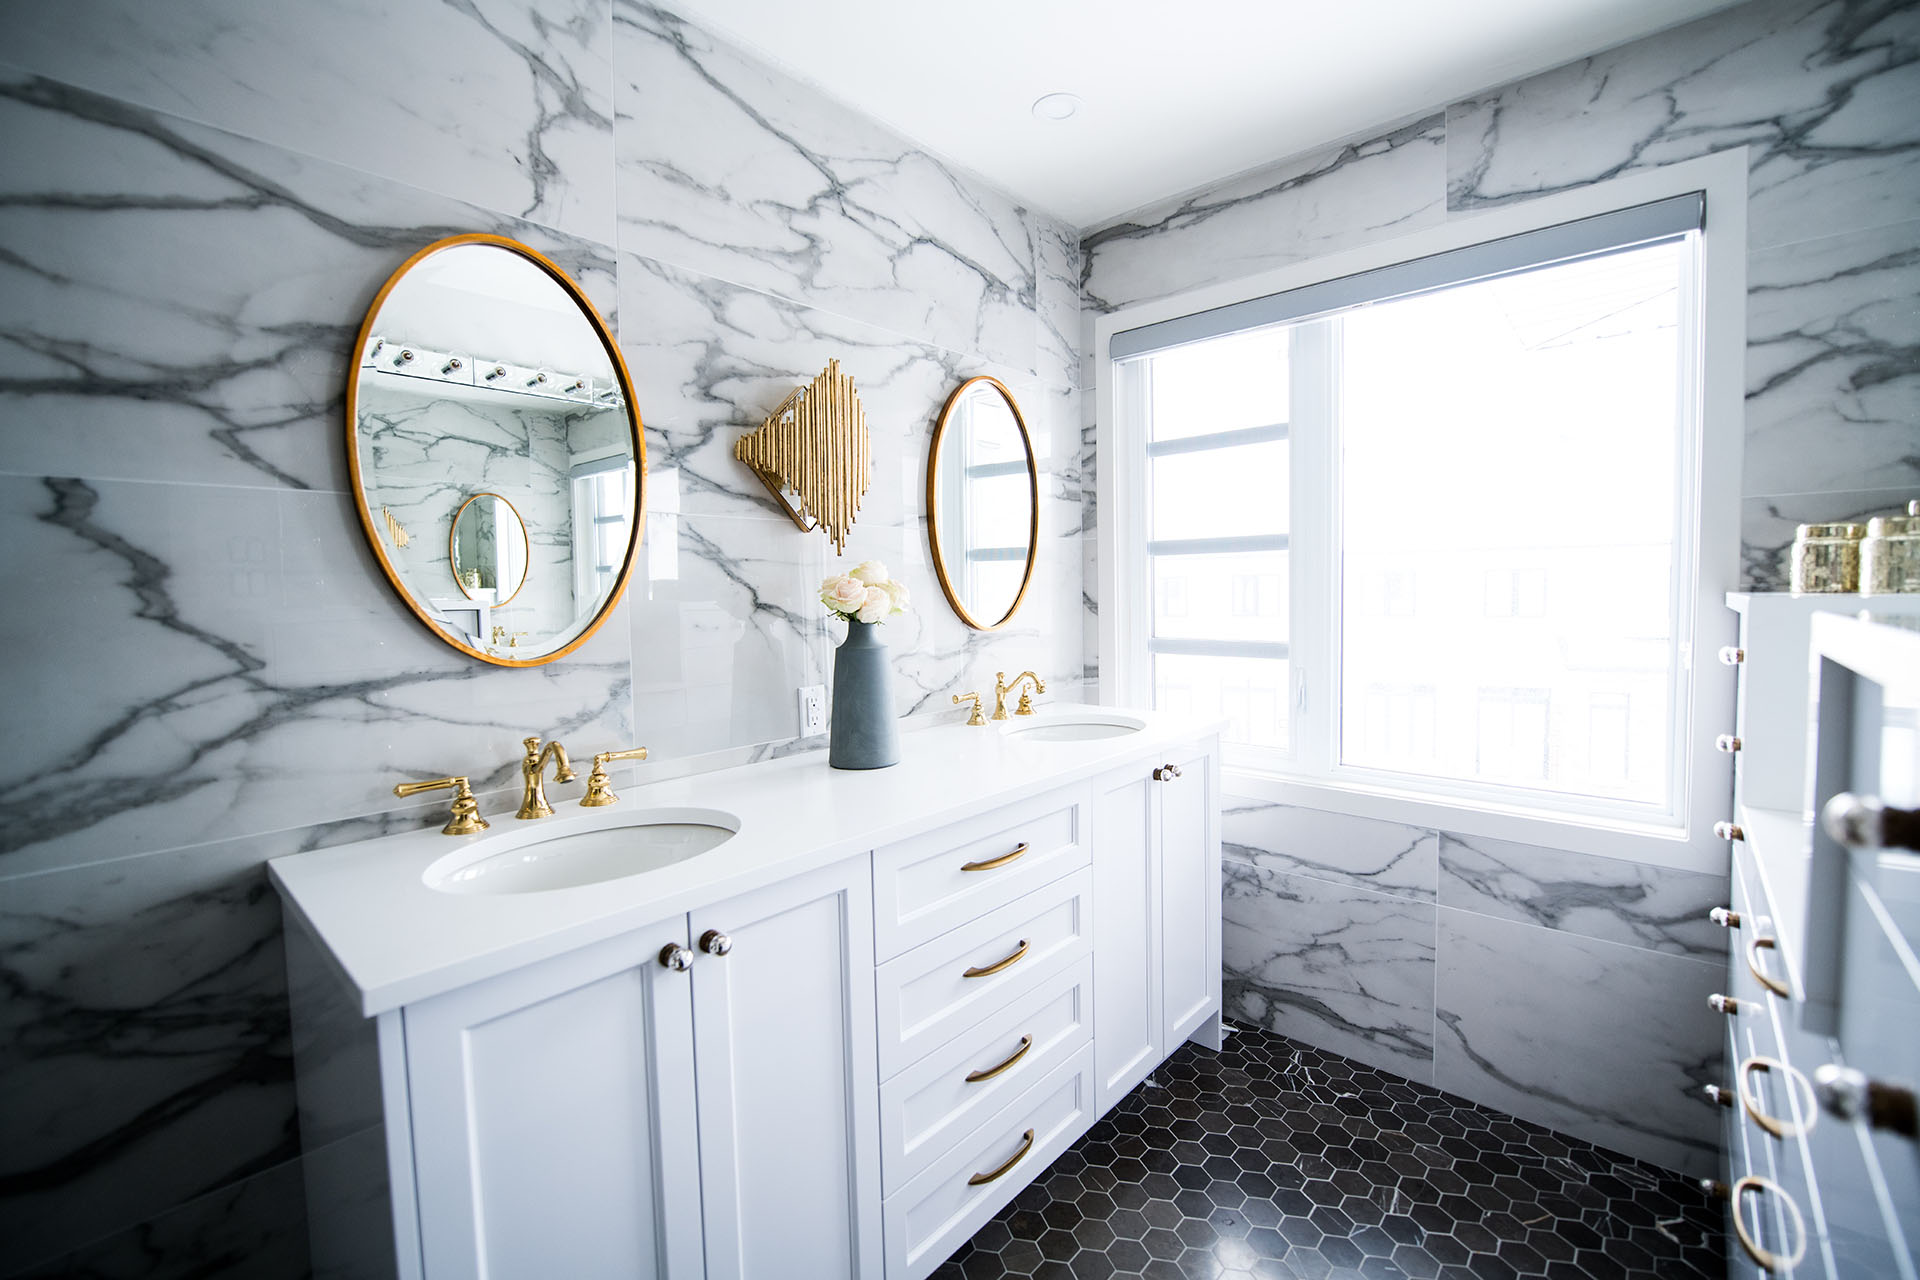 Can You Remodel A Bathroom Without Messing Up The Floor